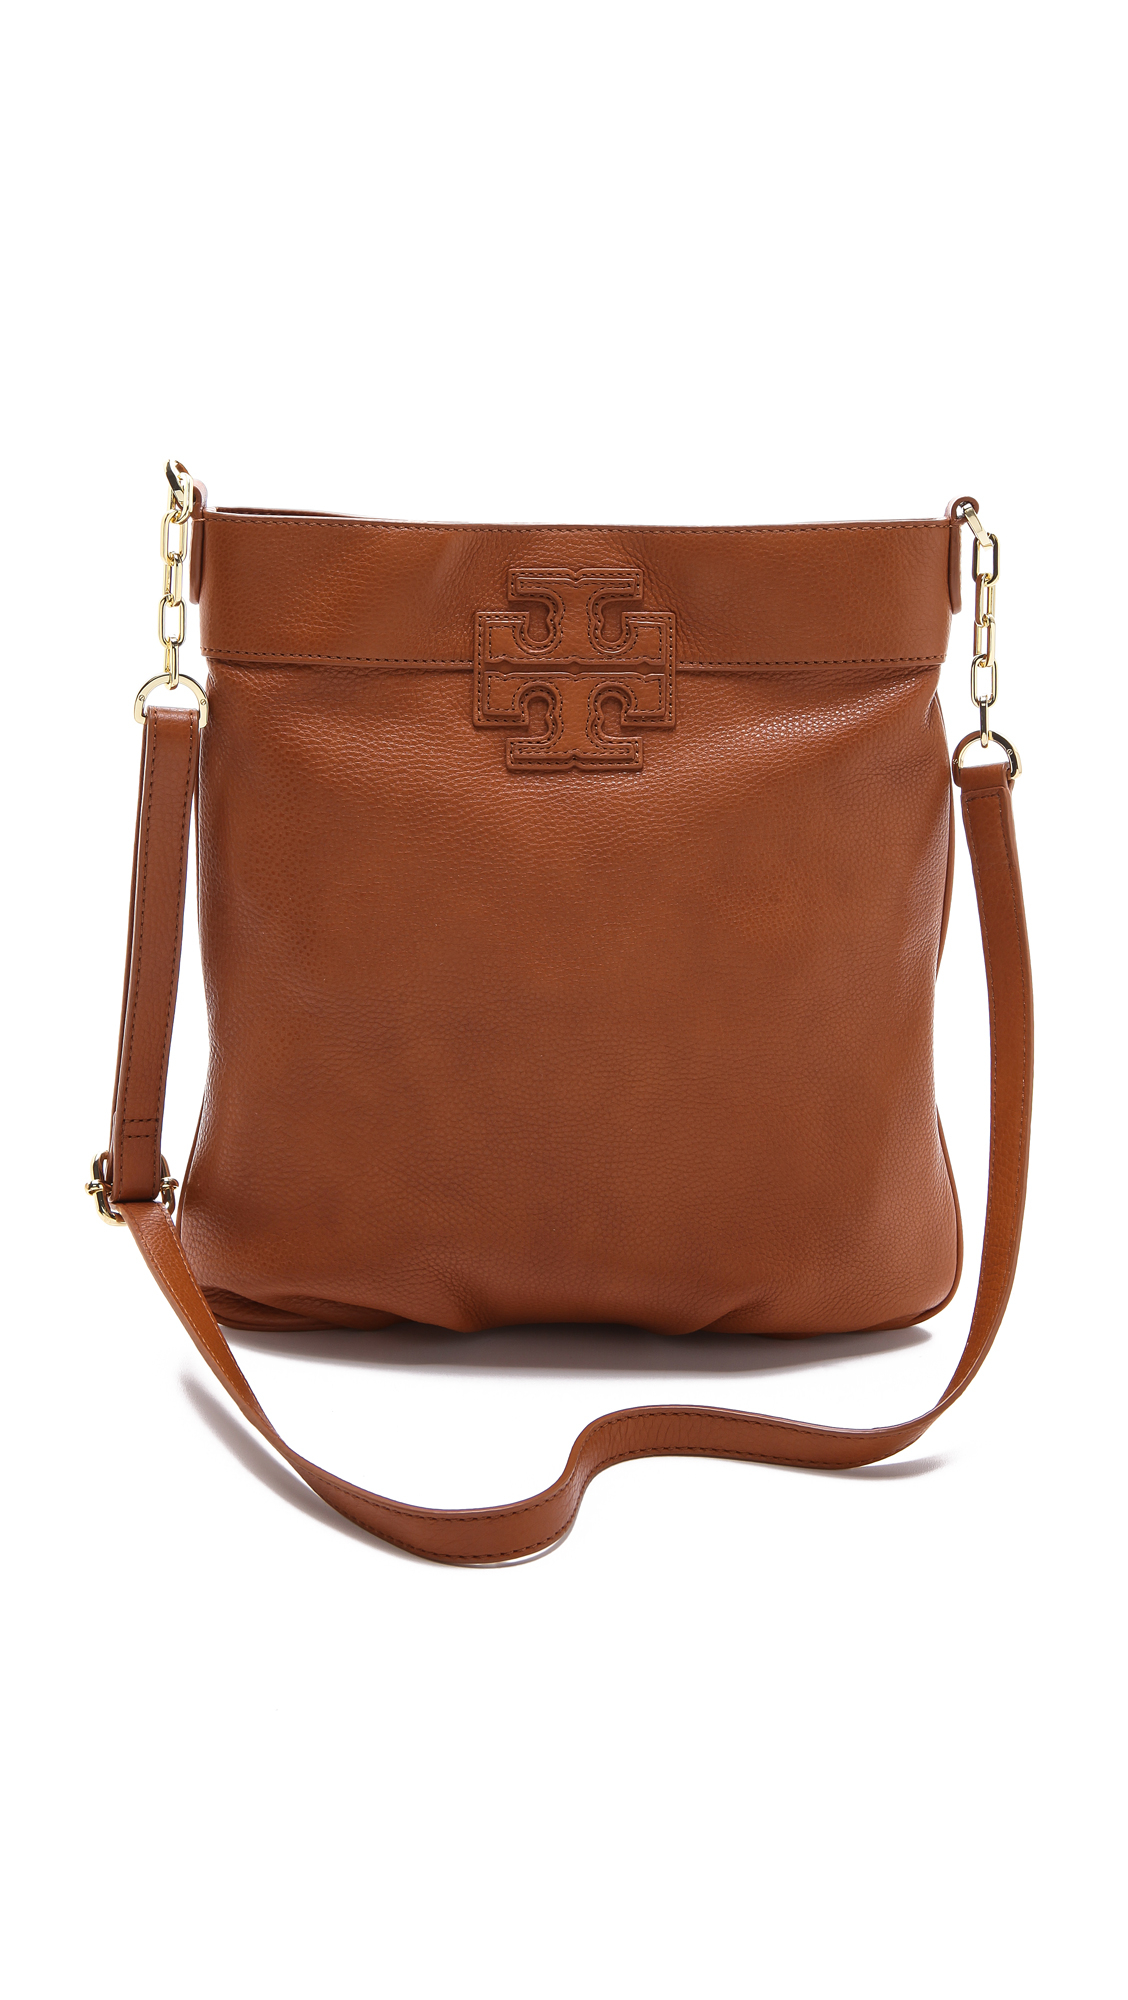 Tory Burch Stacked T Book Bag In Brown Vachetta Lyst